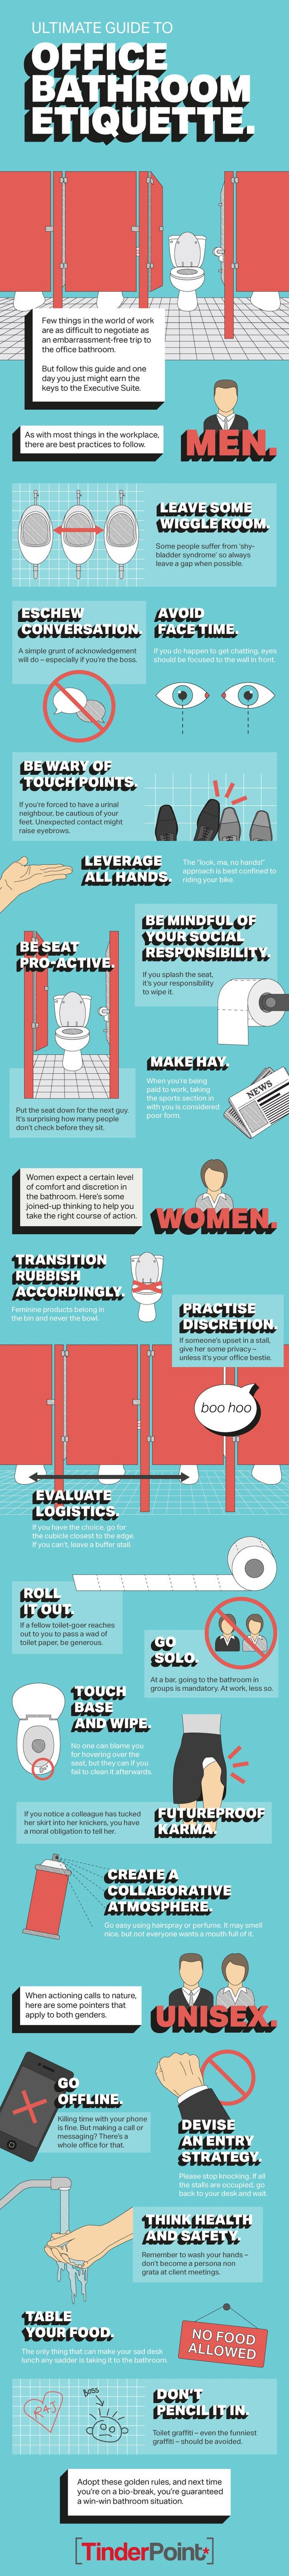 Infographic Courtesy Of TinderPoint Photo Toilet Paper Roll Shutterstock